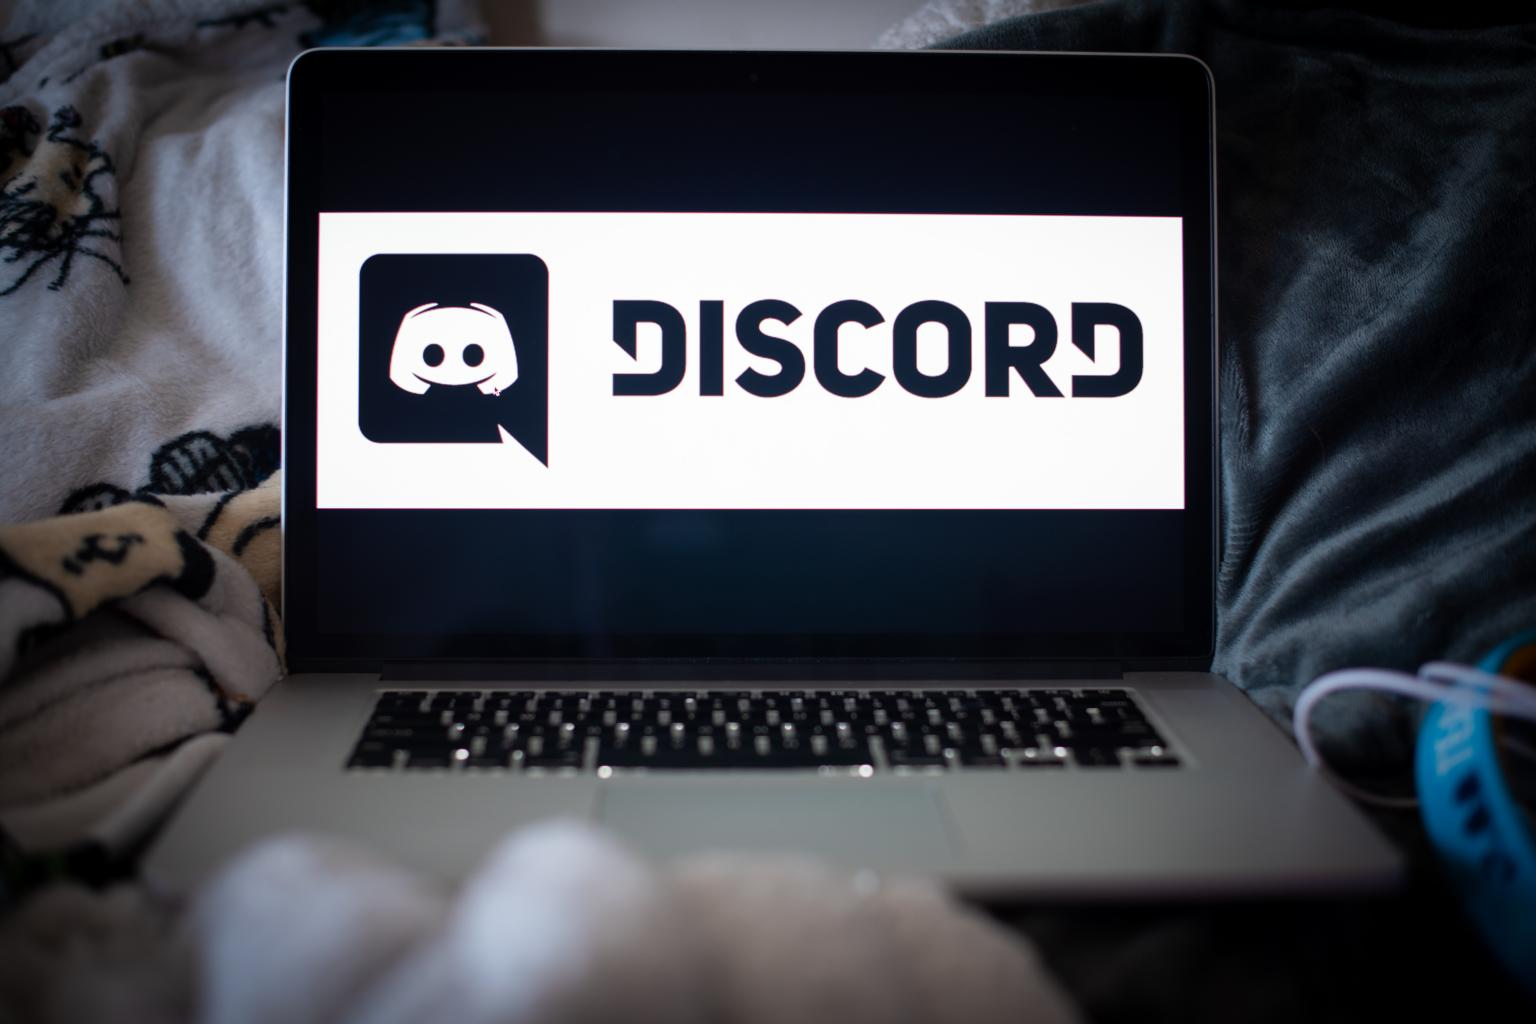 How to Change Name Colour in Discord